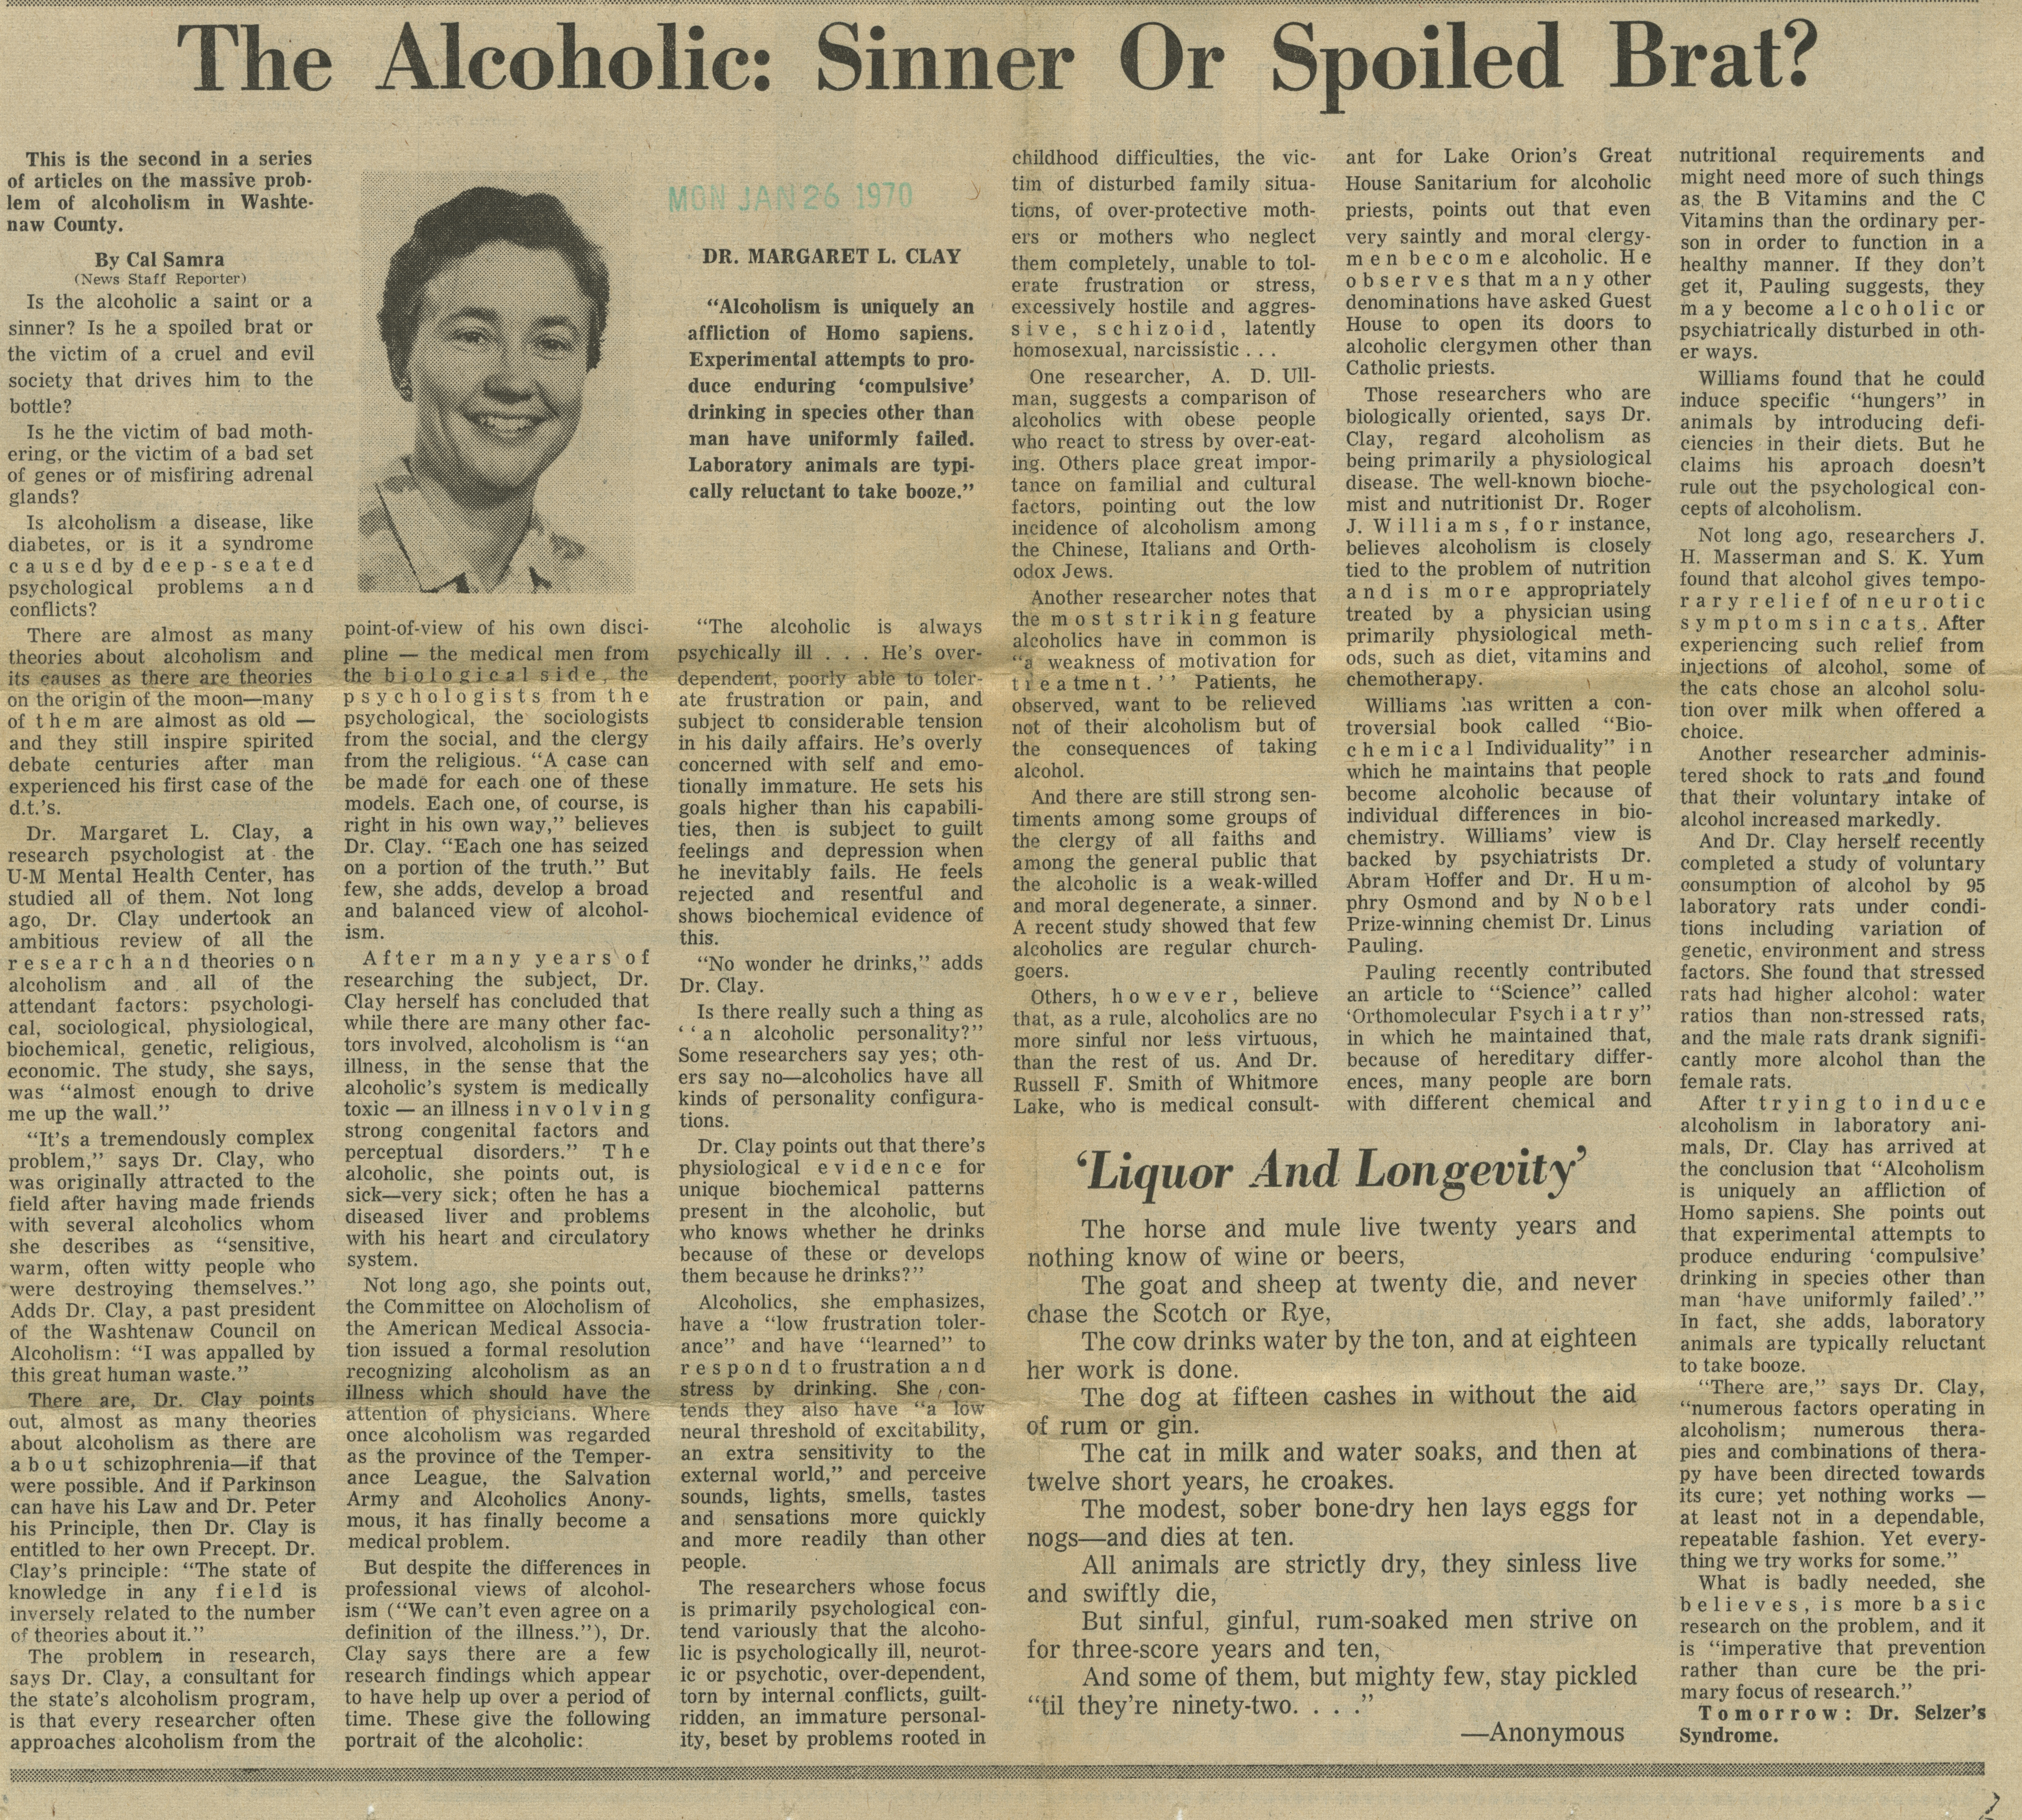 The Alcoholic: Sinner Or Spoiled Brat? image